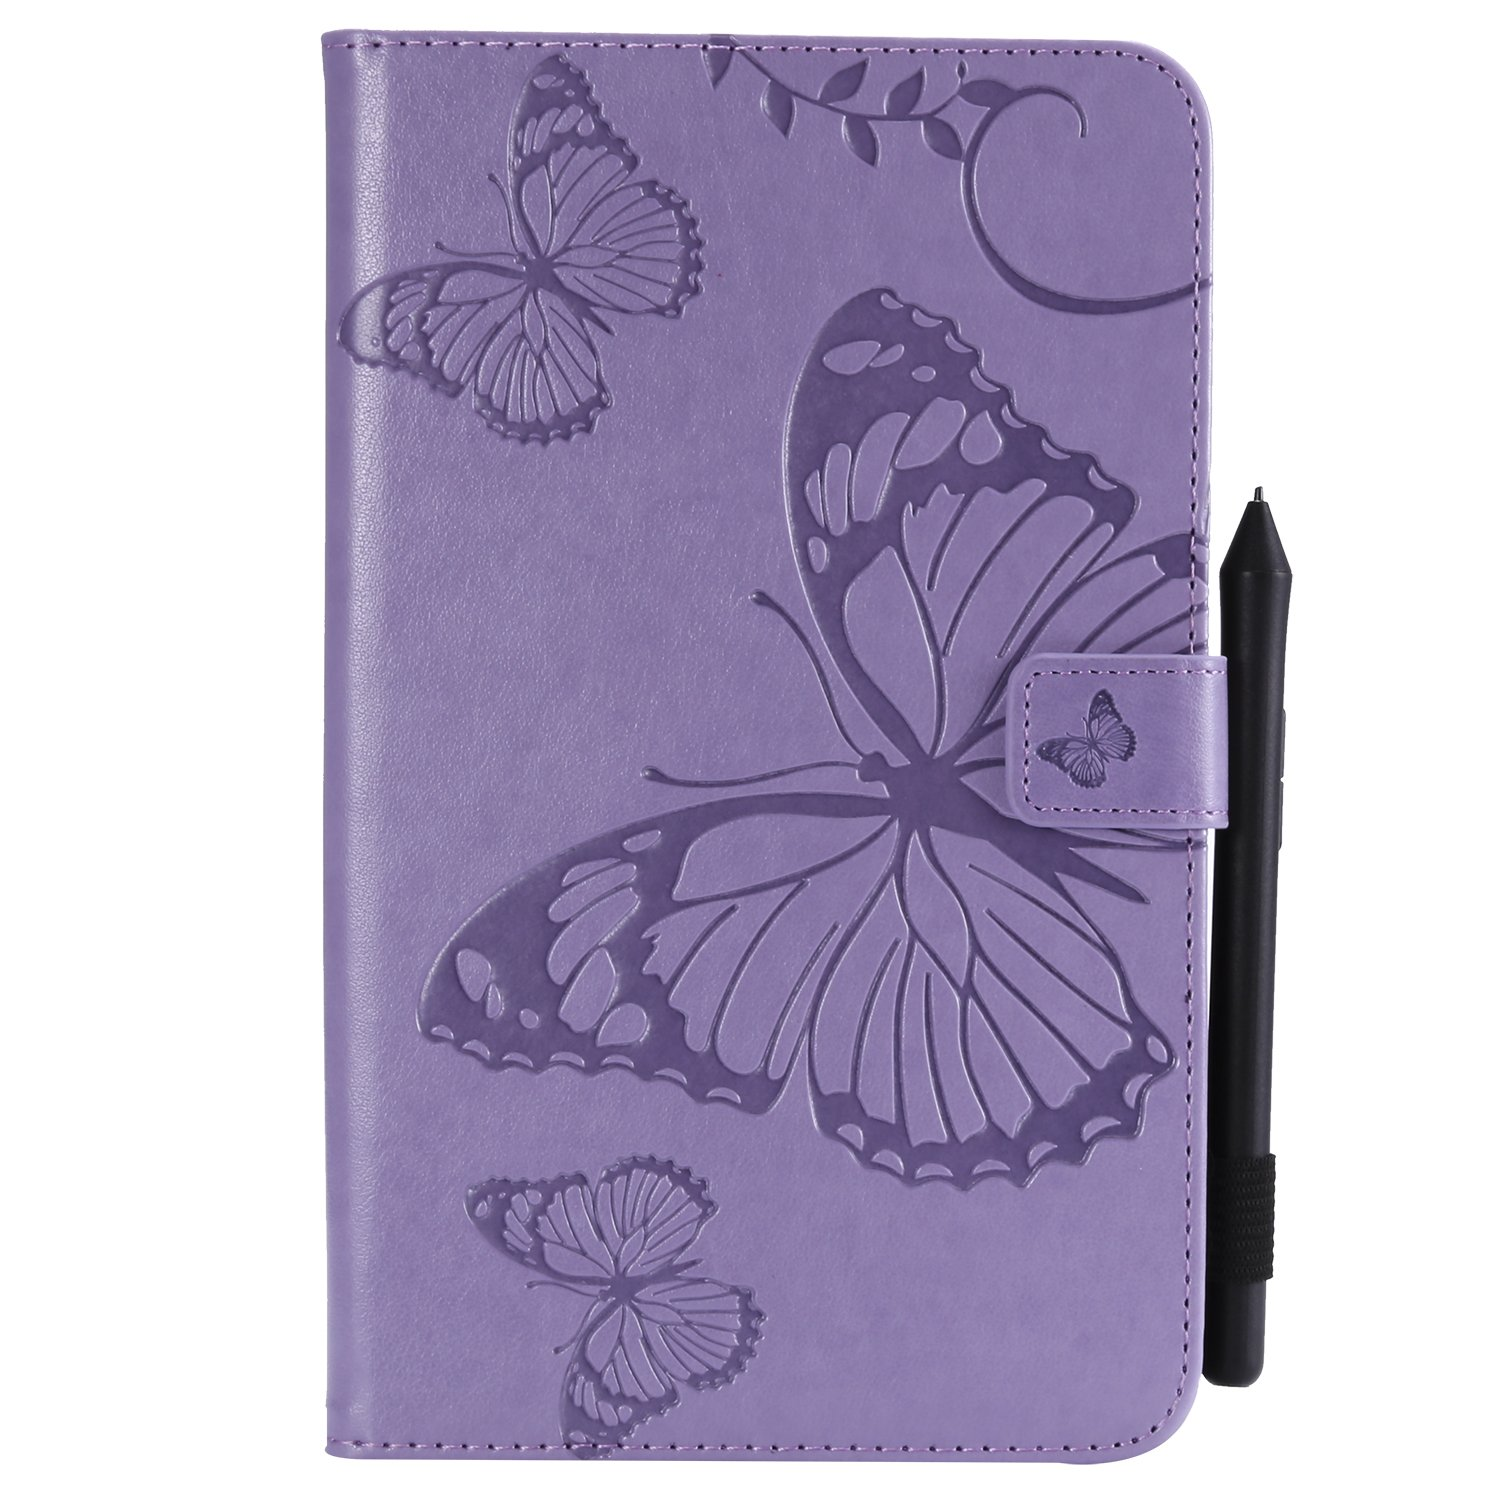 Bear Village Galaxy Tab a 2017 8.0 Inch Case, Butterfly Embossed Anti Scratch Shell with Adjust Stand, Smart Stand PU Leather Case for Samsung Galaxy Tab a 2017 8.0 Inch, Purple by Bear Village